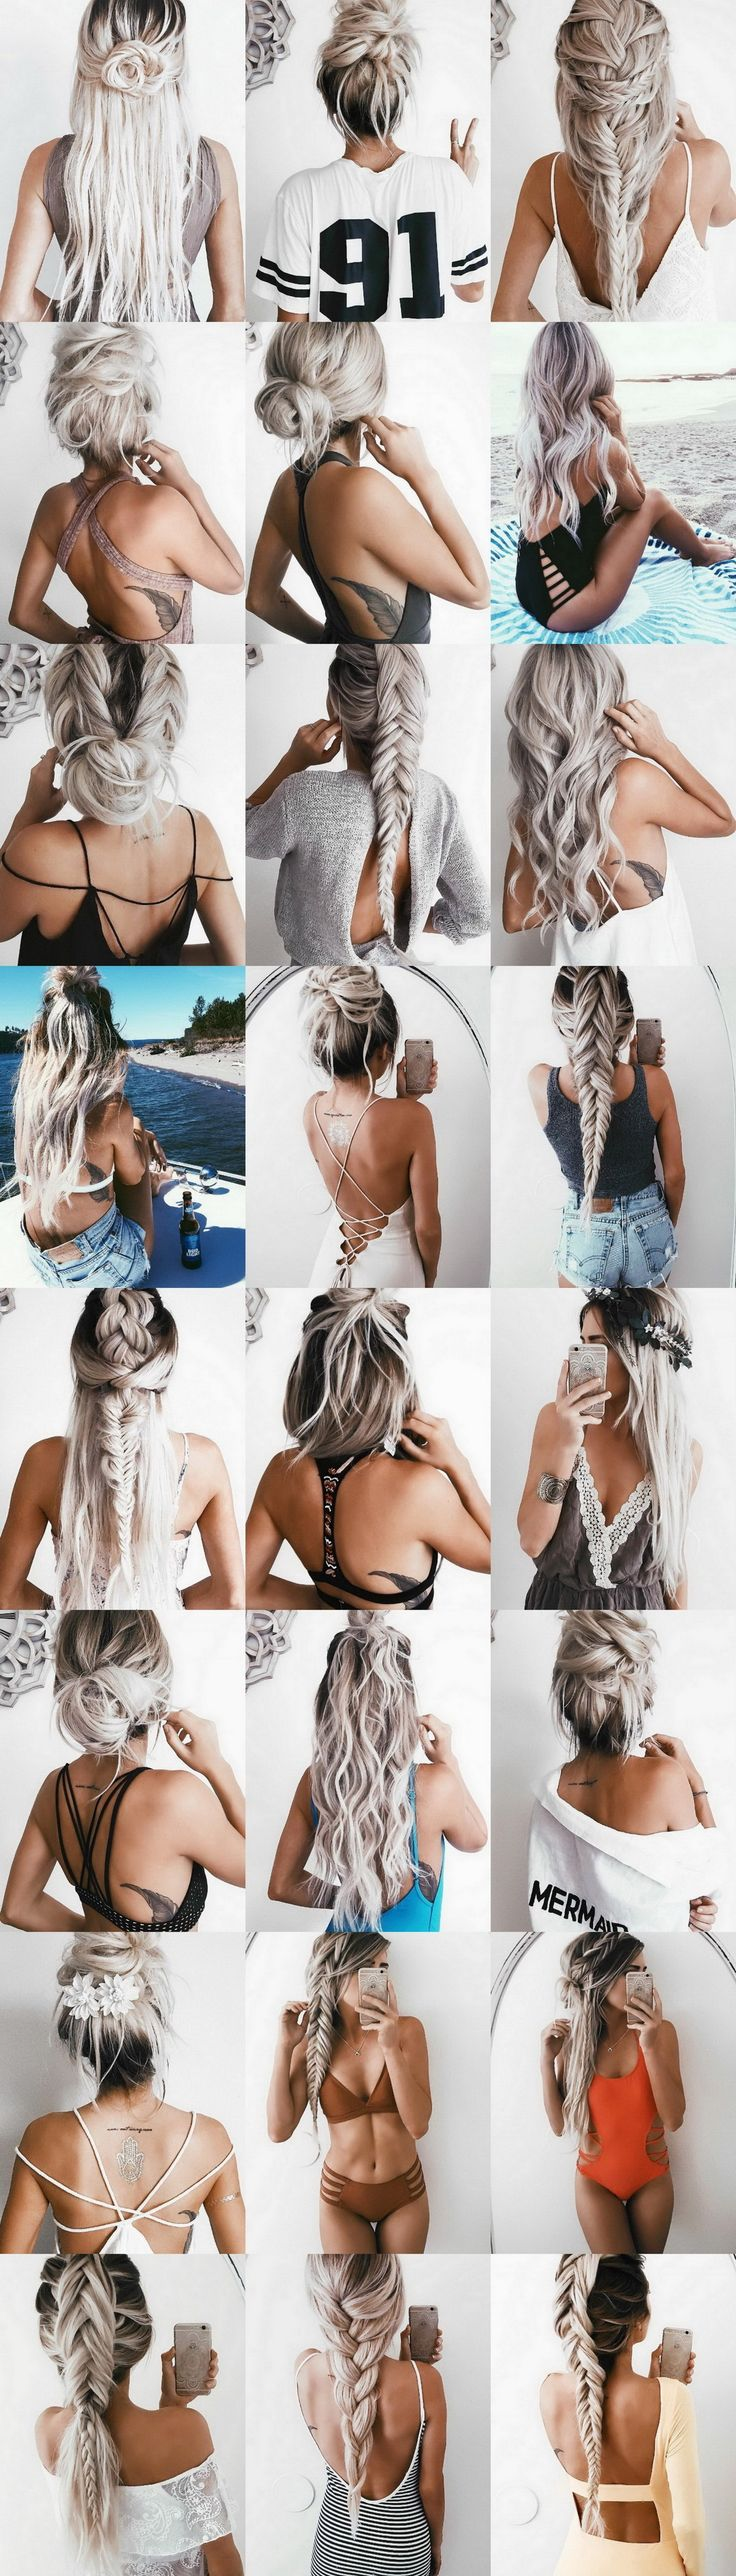 💇 24 Gorgeous Blonde Hairstyles Emily Hannon